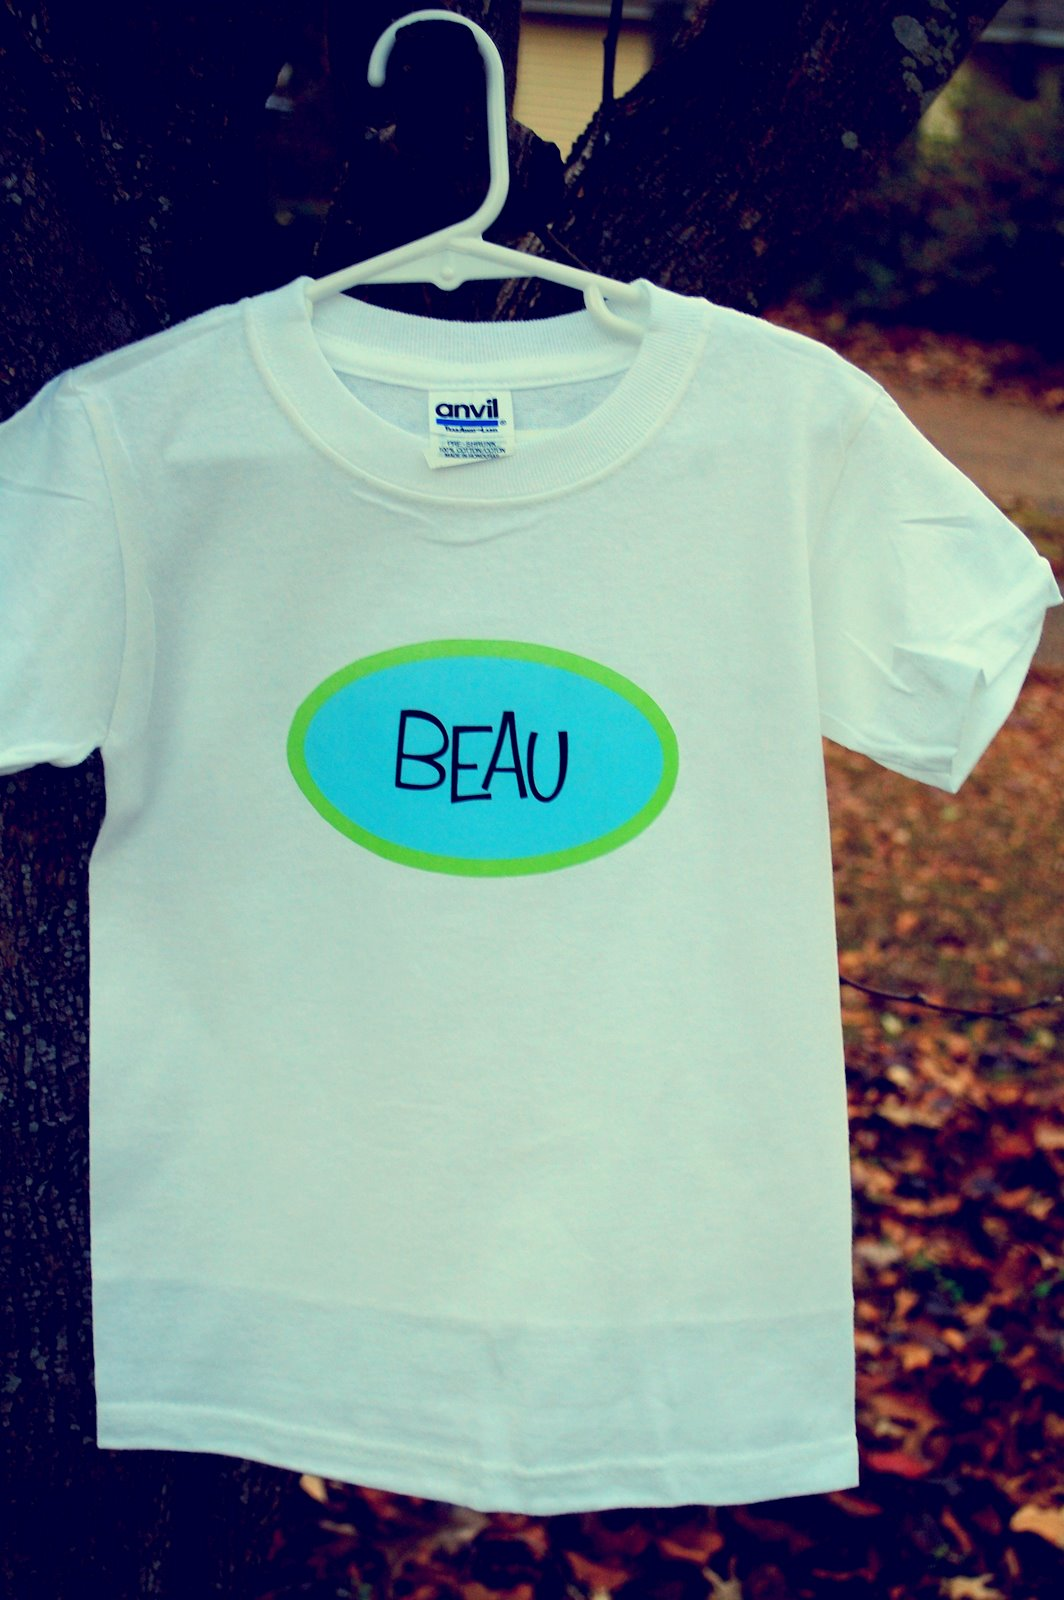 Baby Face Design Cute Personalized T Shirts For Kids